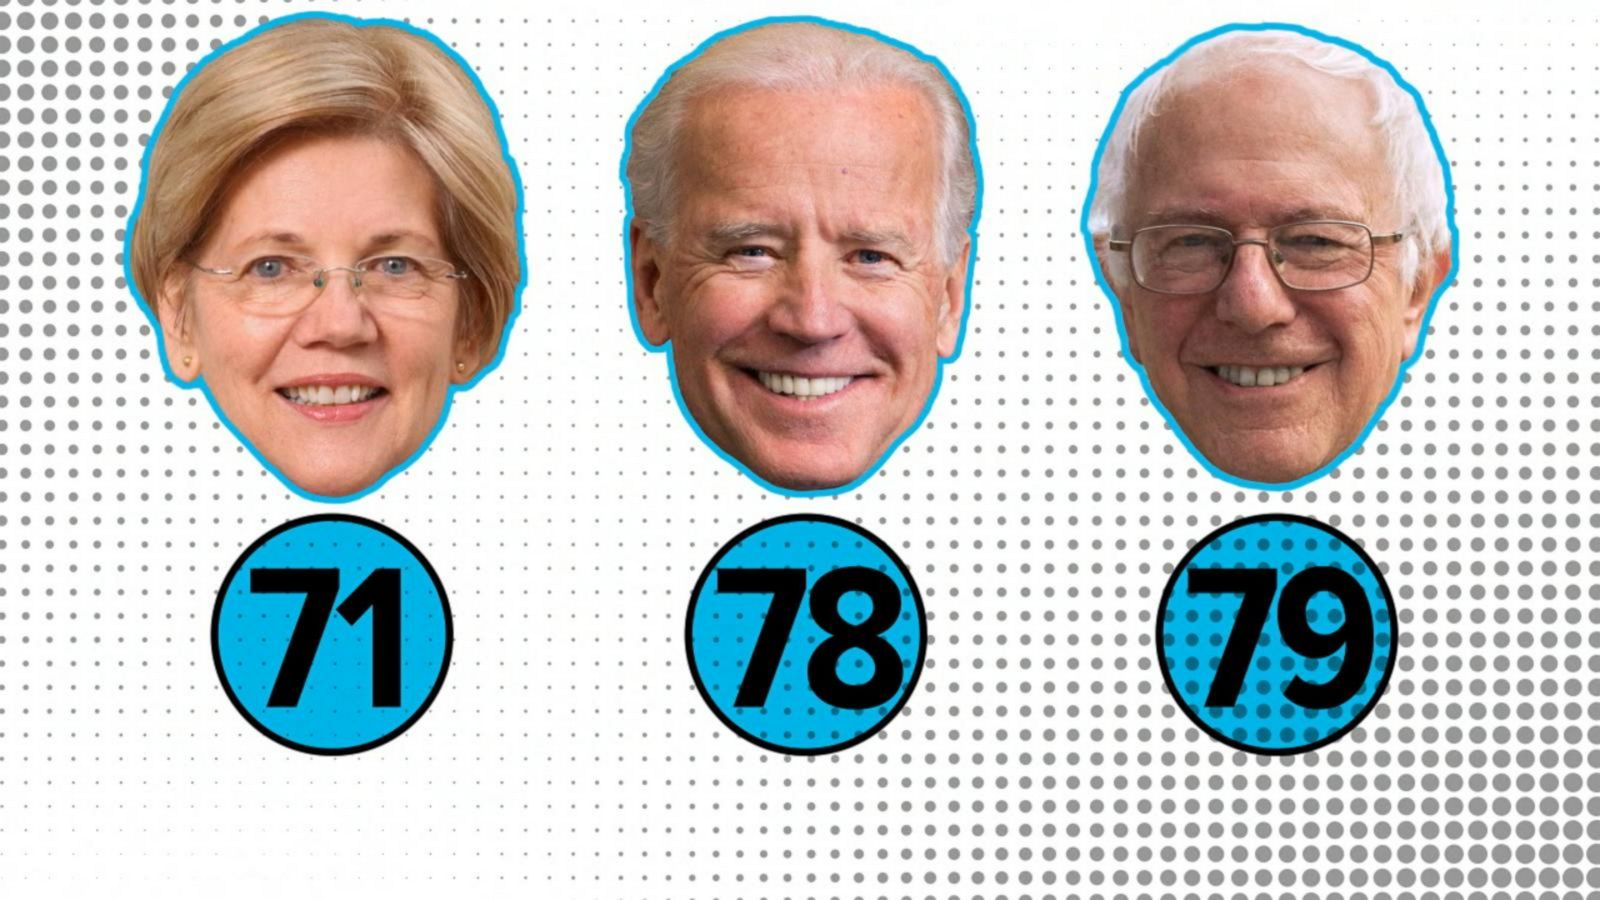 Do You Buy That … Age Will Be A Factor In Determining The Democratic Nominee?